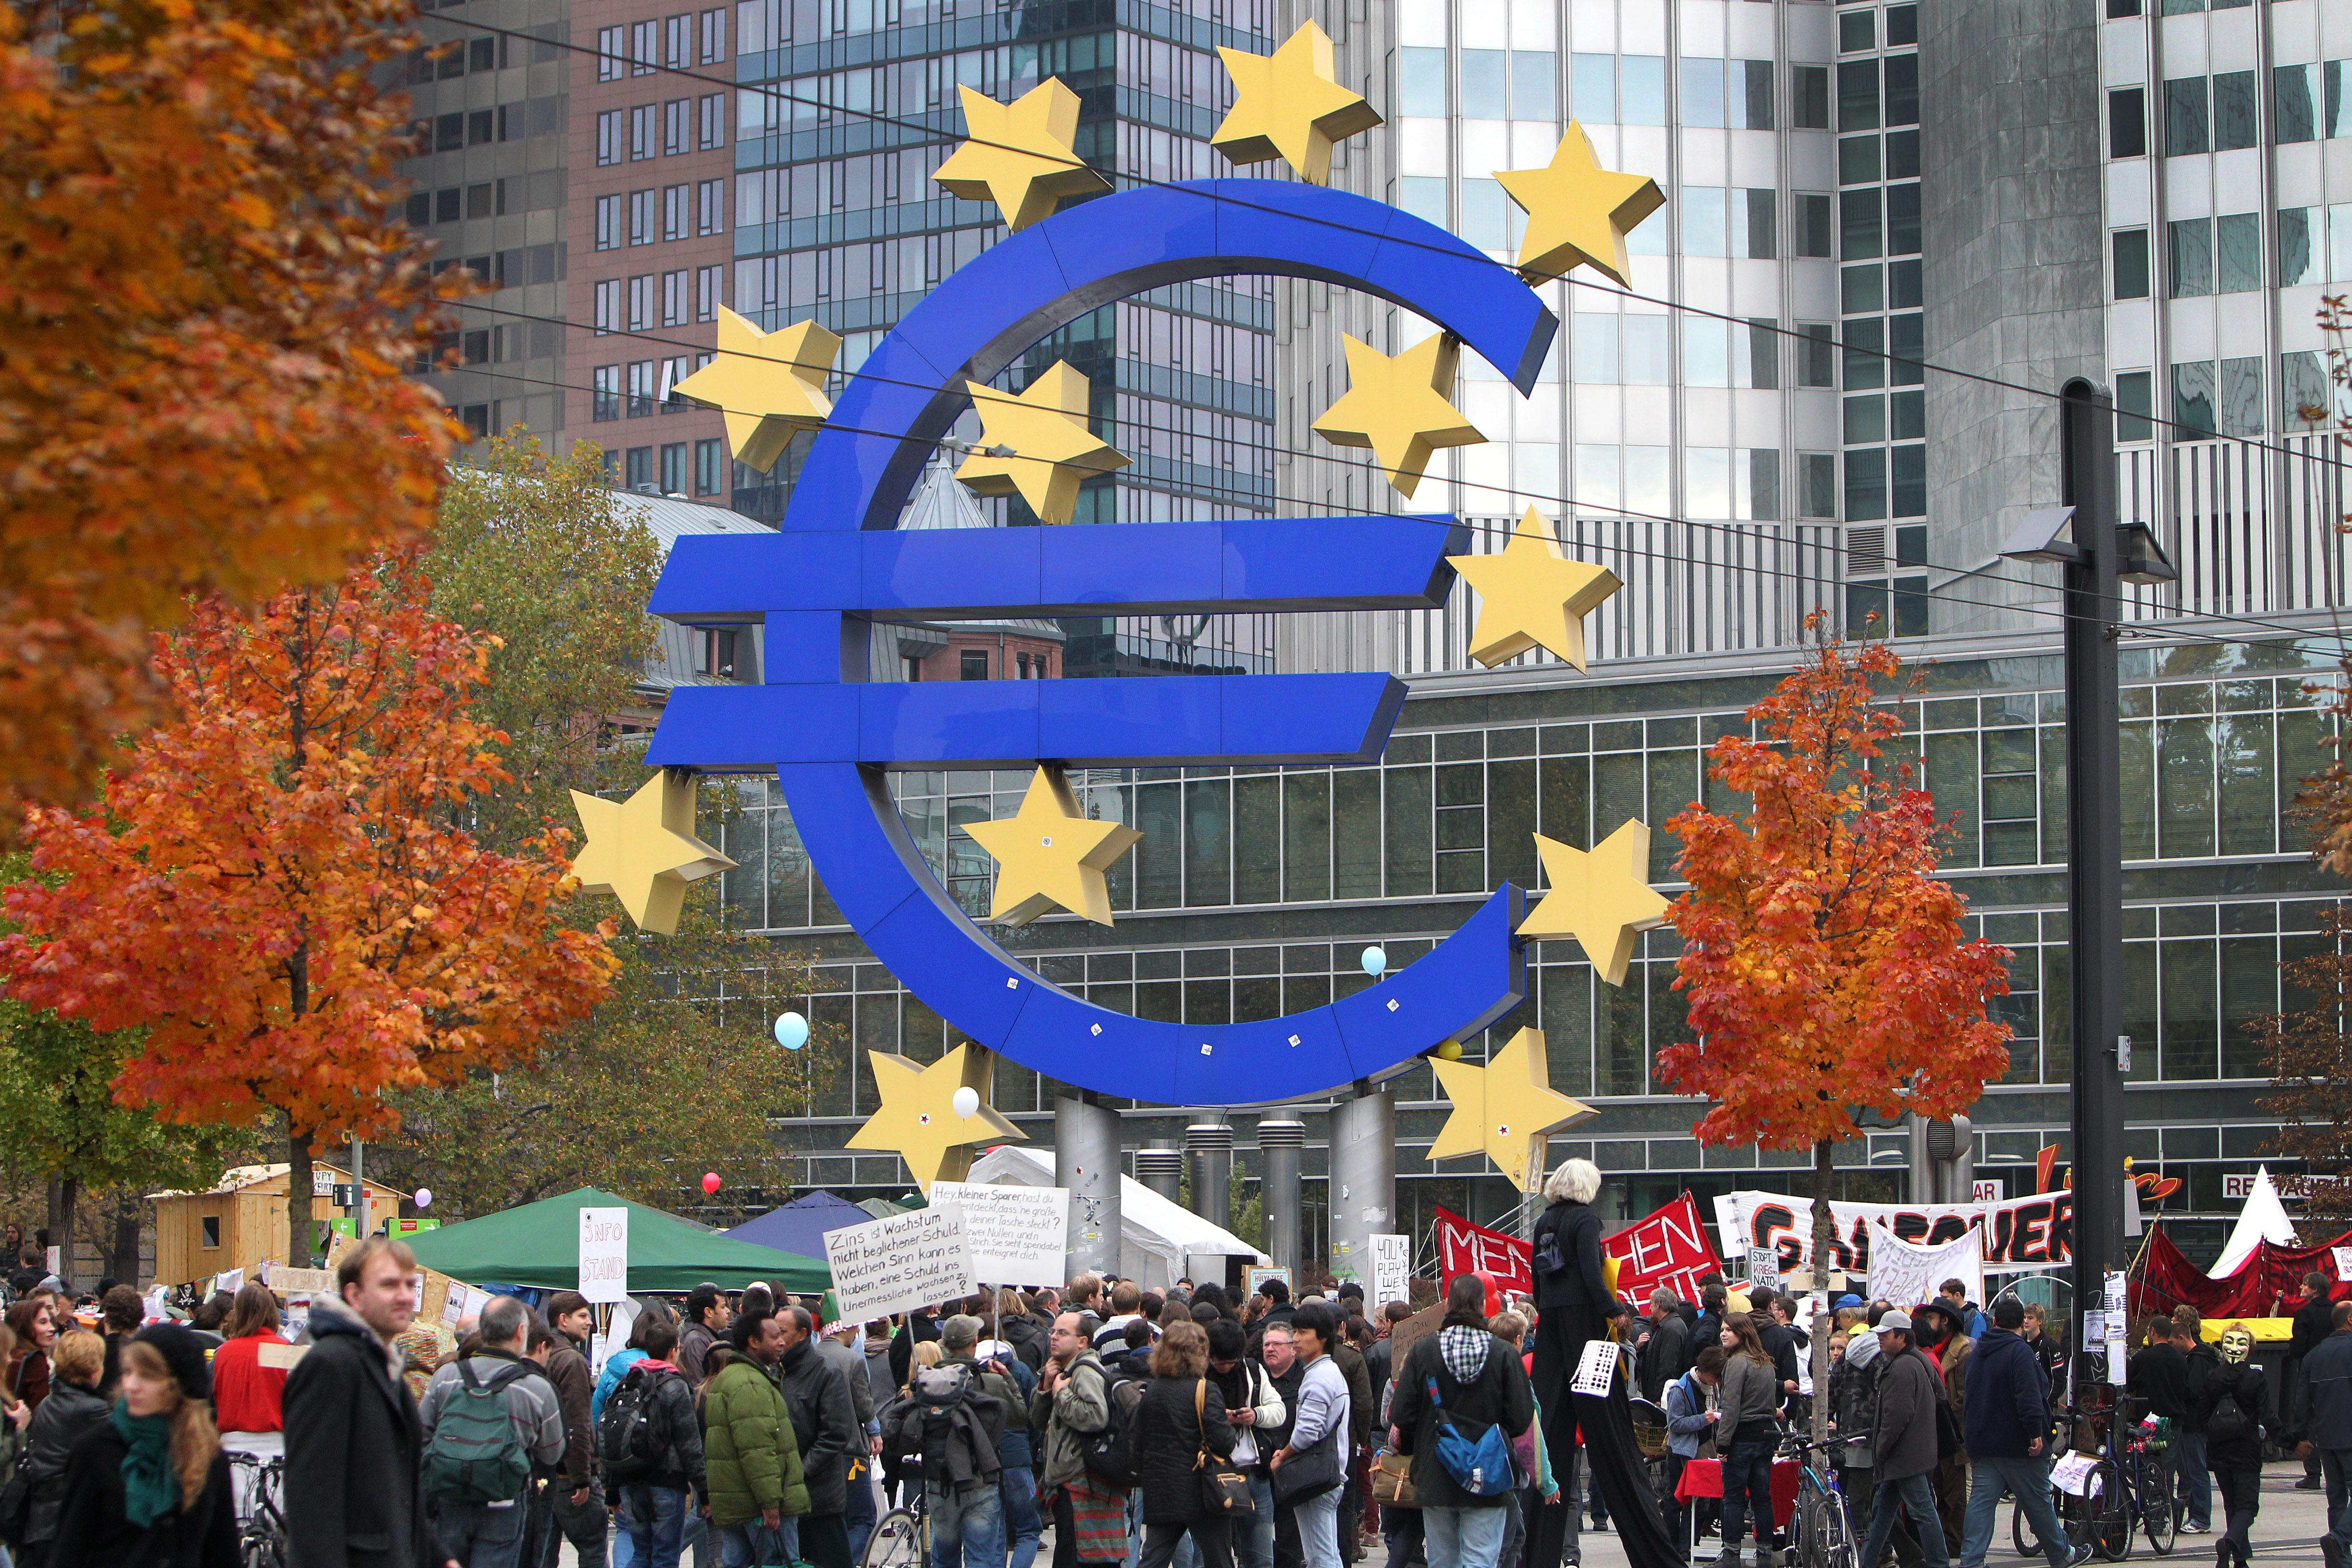 Demonstrators crowd around the euro logo in front of the European Central Bank (ECB) as they take part in a protest march as part of the 'Occupy Frankfurt' movement in Frankfurt am Main, on October 29, 2011